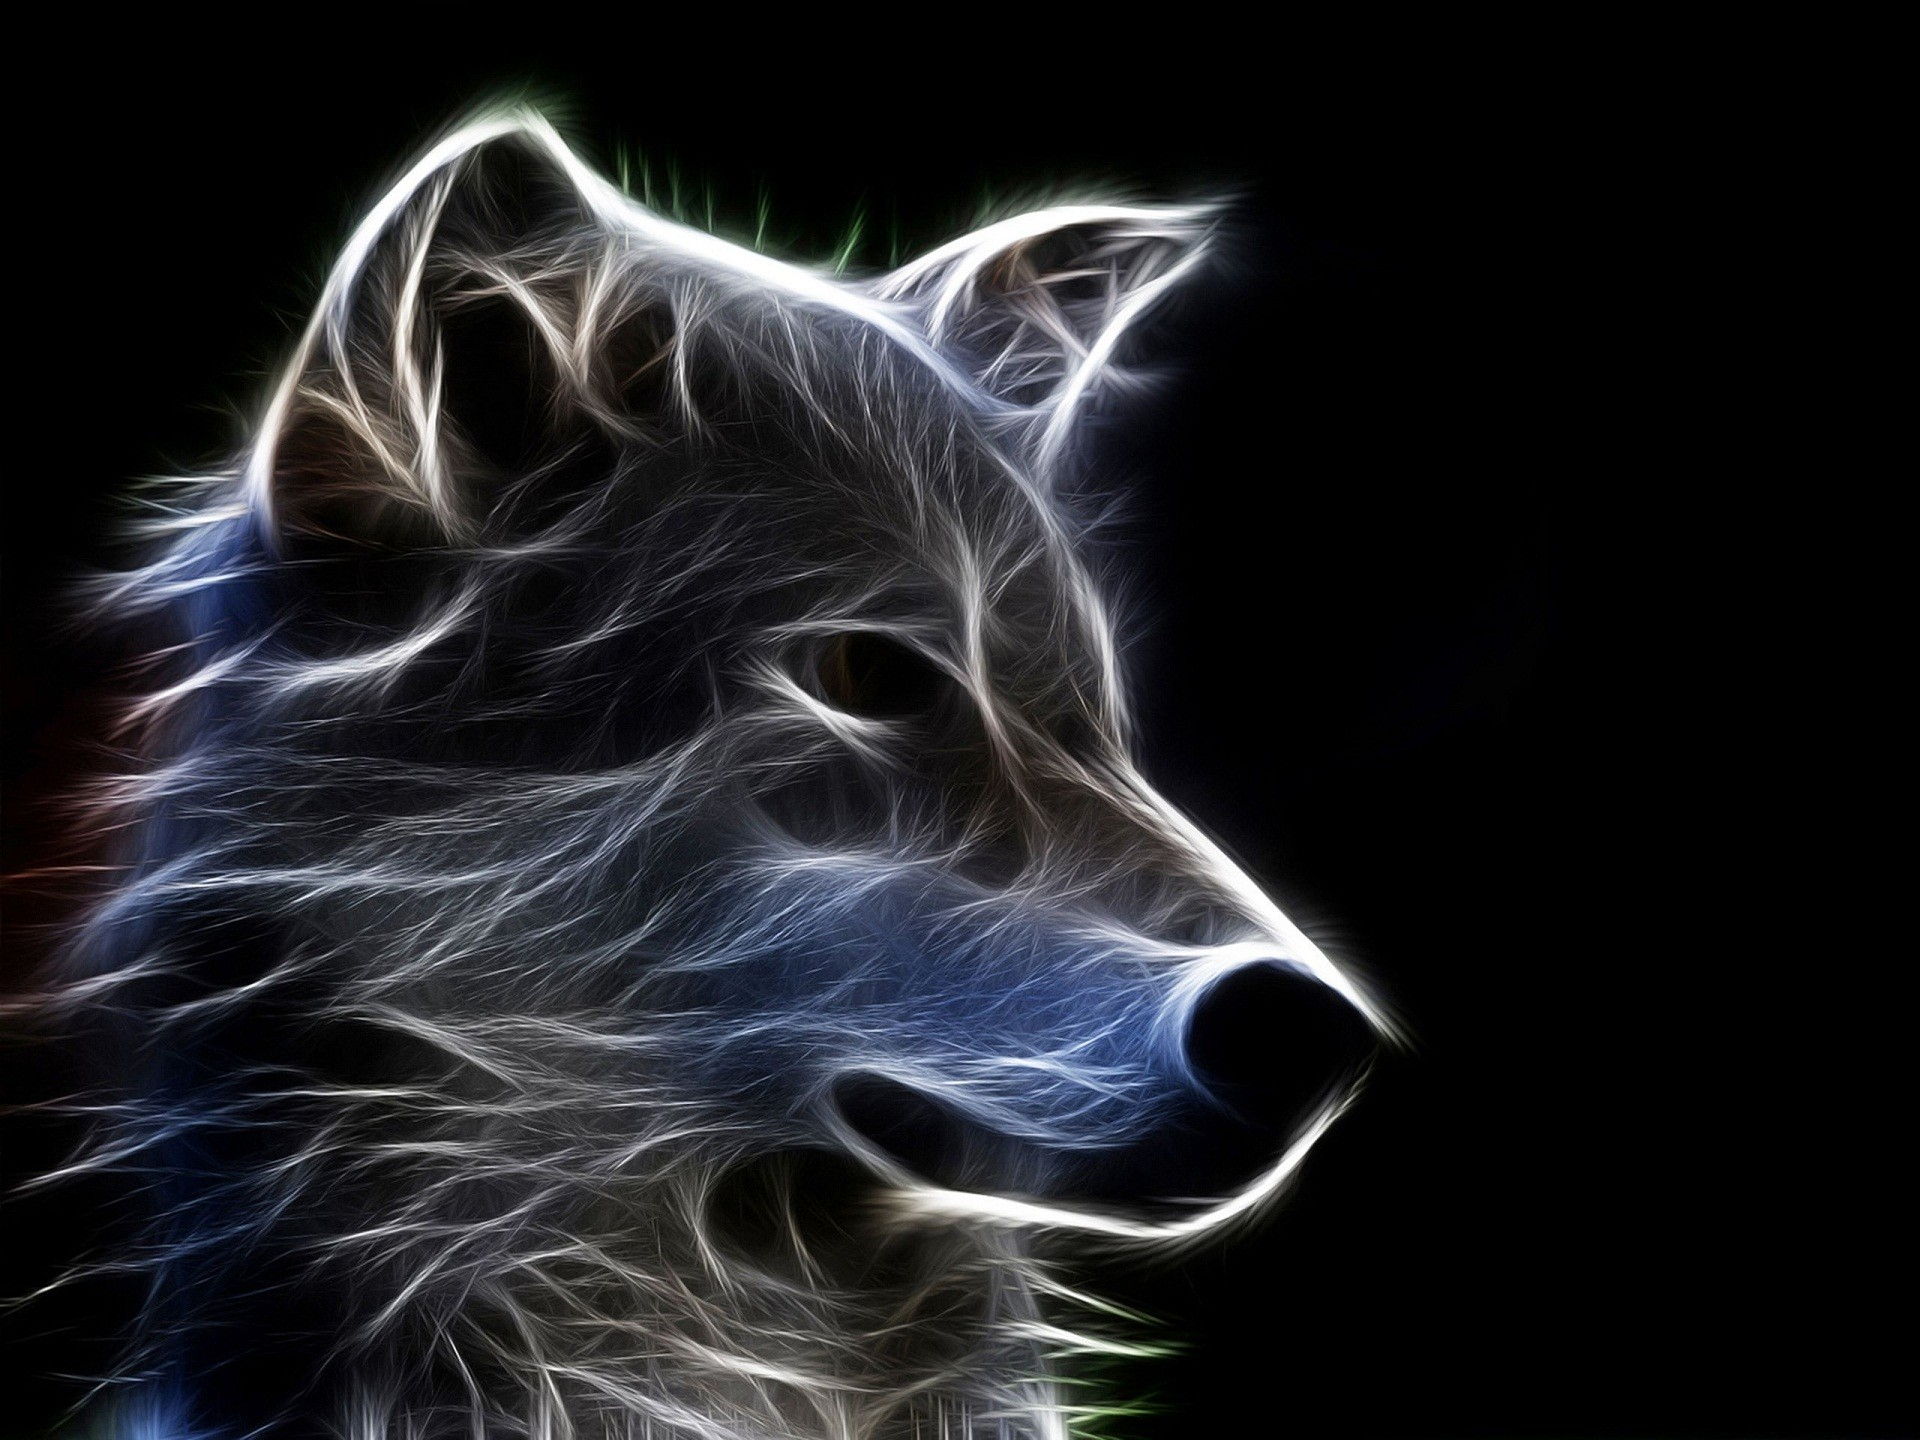 Download Animated Wallpapers For Mobile Phone Yin Yang Wallpaper Wolf 44 Images